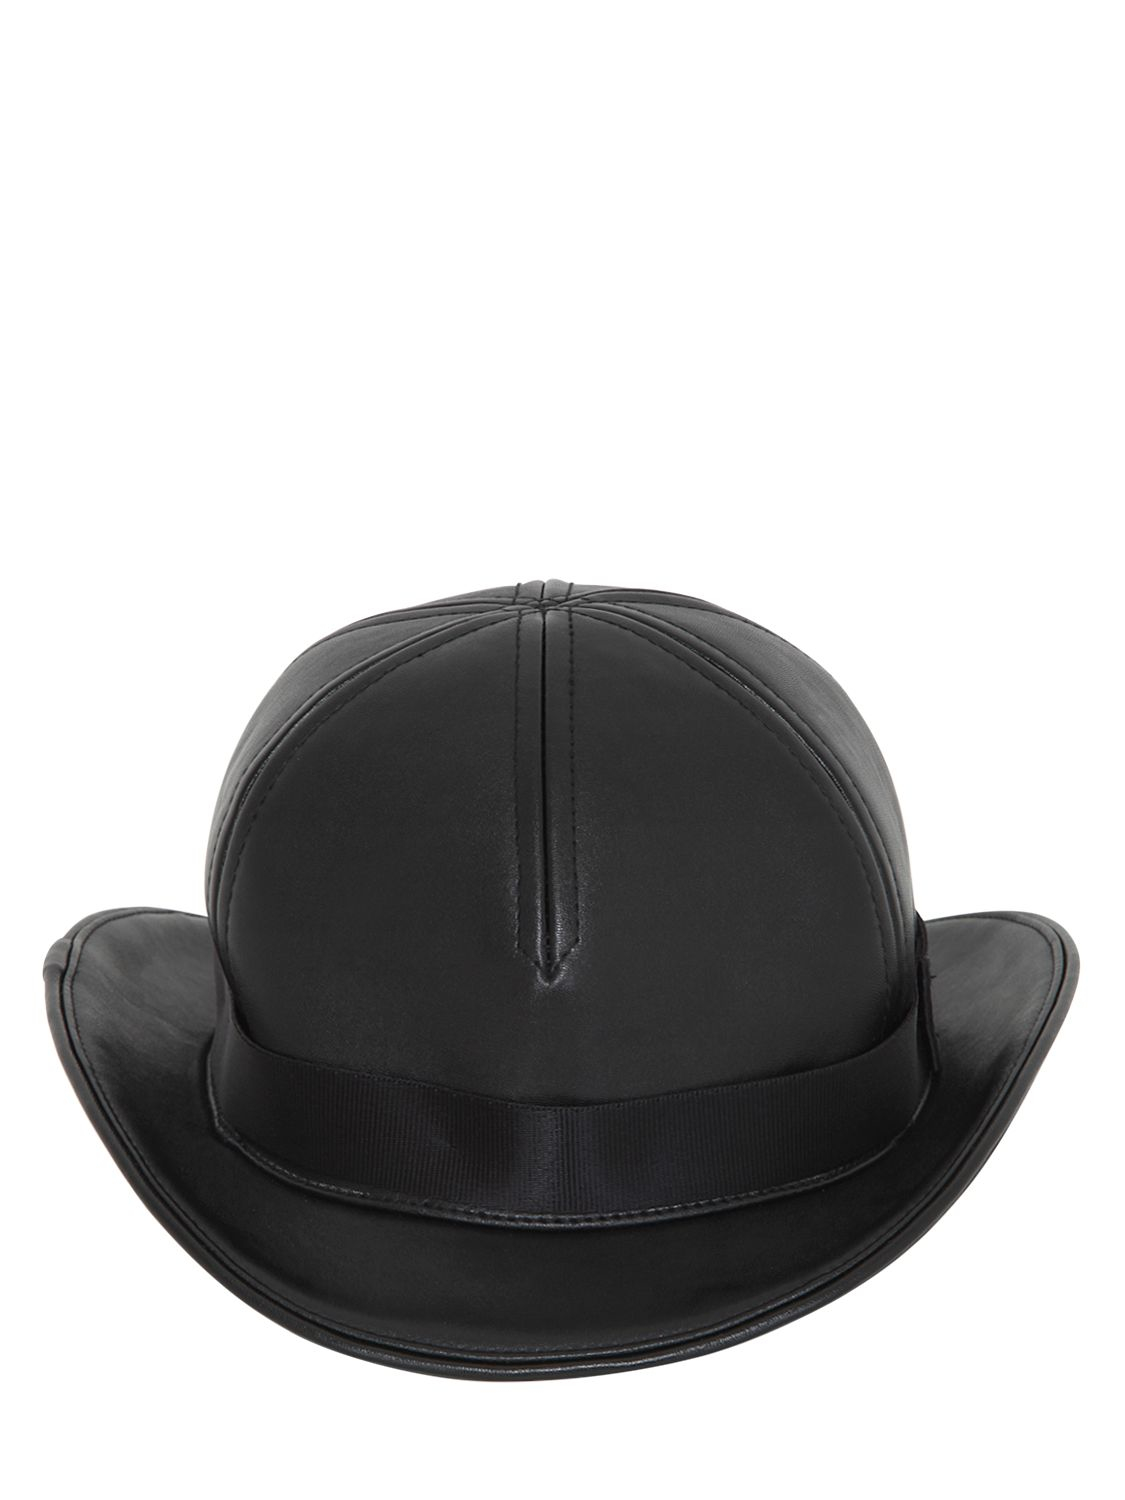 36c925e87f KTZ Faux Leather Bowler Hat in Black for Men - Lyst